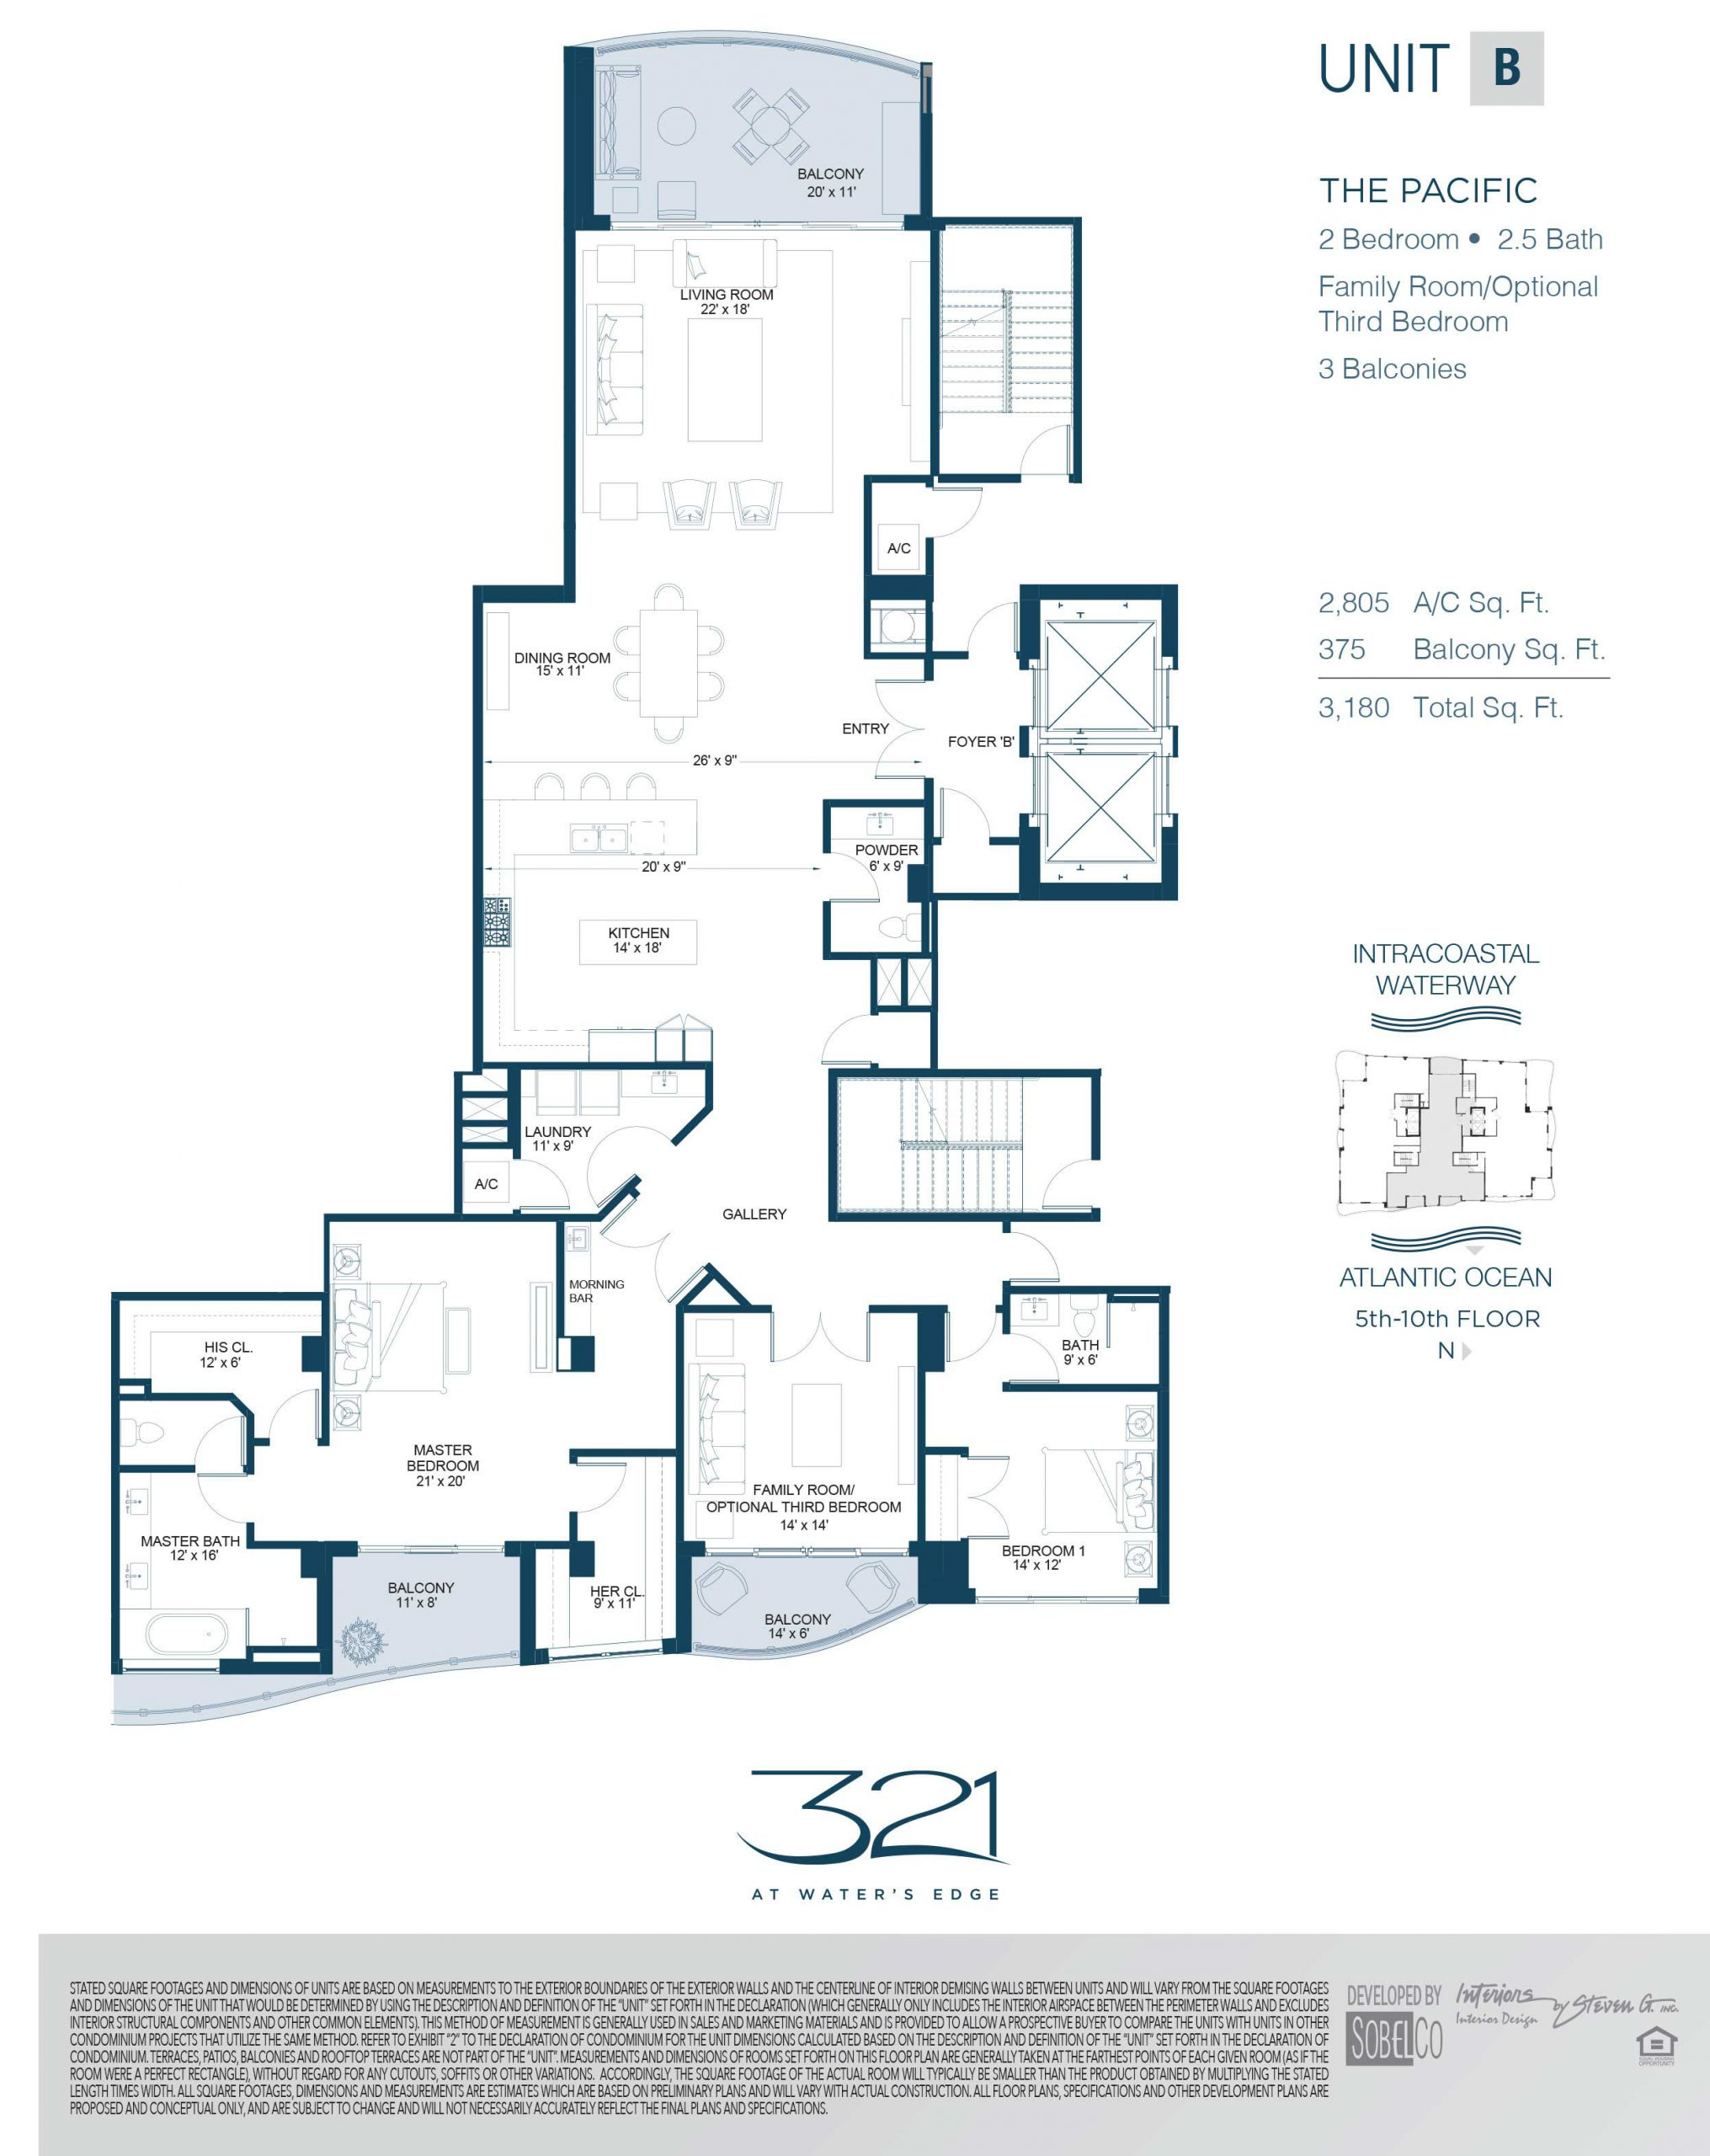 321 At Waters Edge Floor Plans Unit B